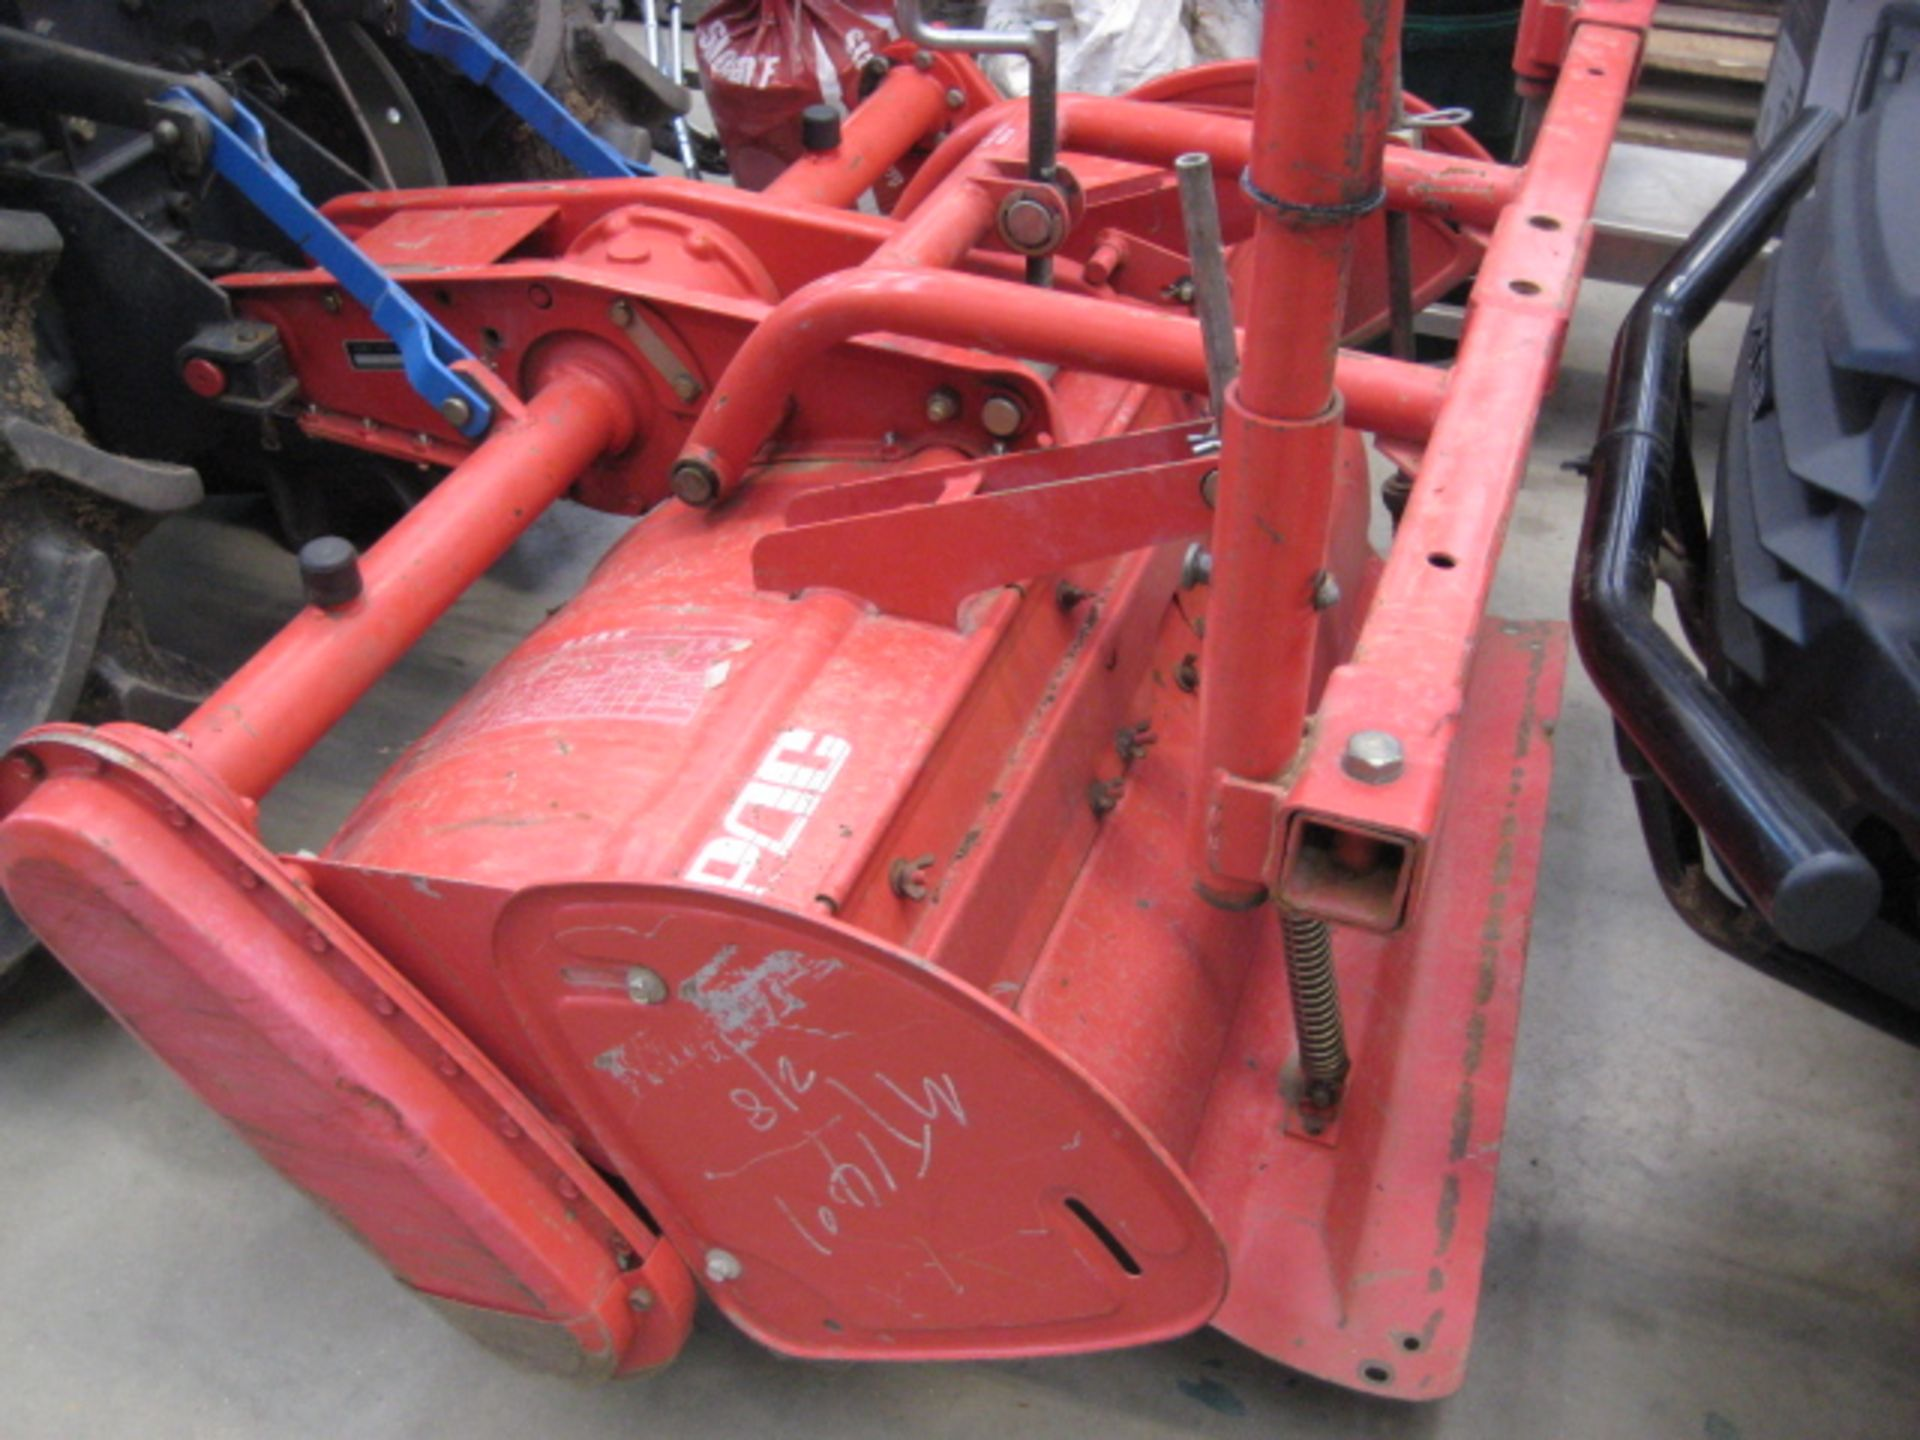 Lot 4024 - Mitsubishi MT1401D DX 4x4 compact tractor, K3B-13A 3 cylinder diesel showing 1058 hours, with